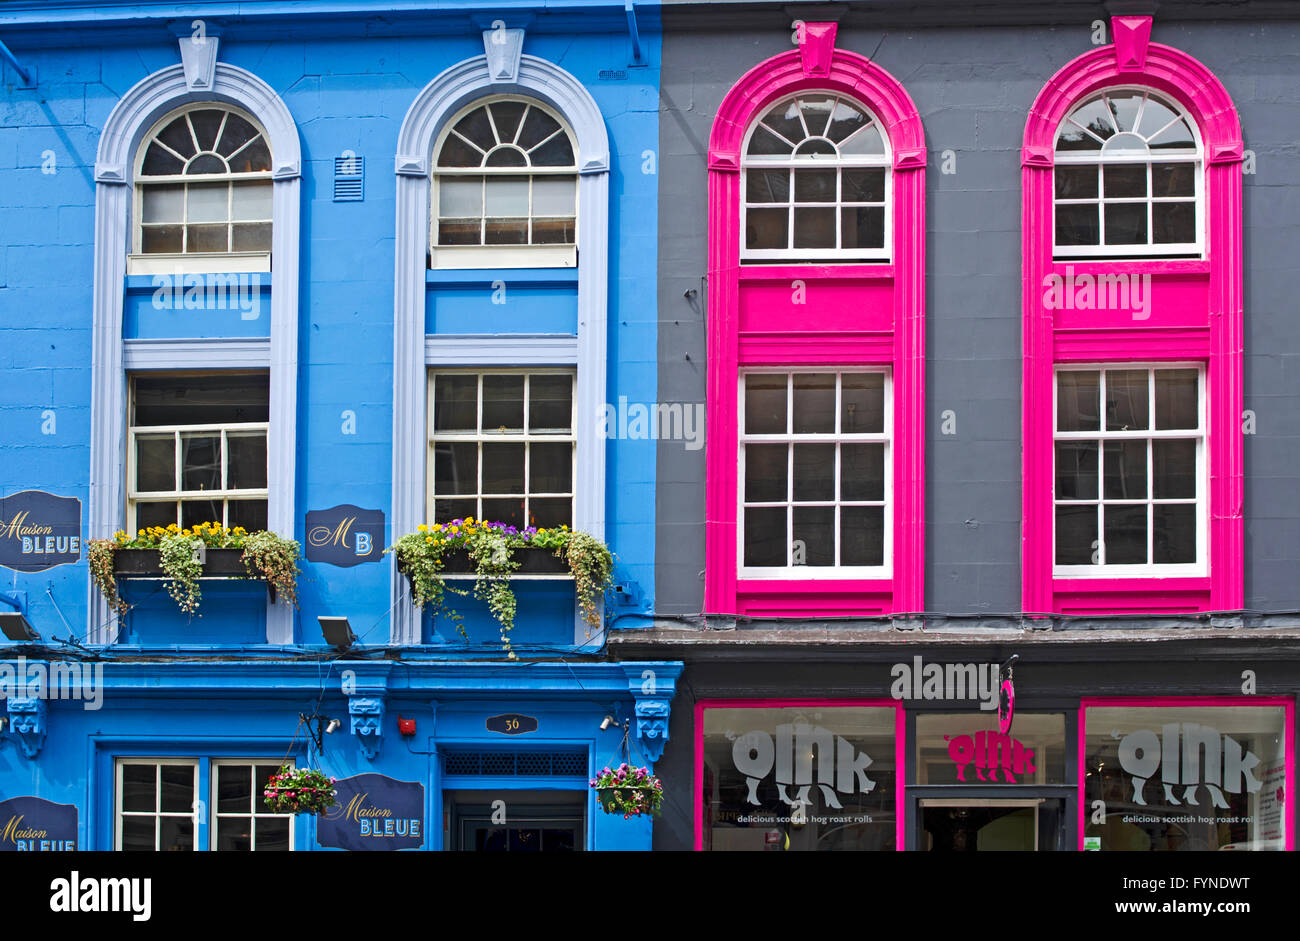 close up of brightly painted facades of two store fronts on victoria stock photo 103119460 alamy. Black Bedroom Furniture Sets. Home Design Ideas